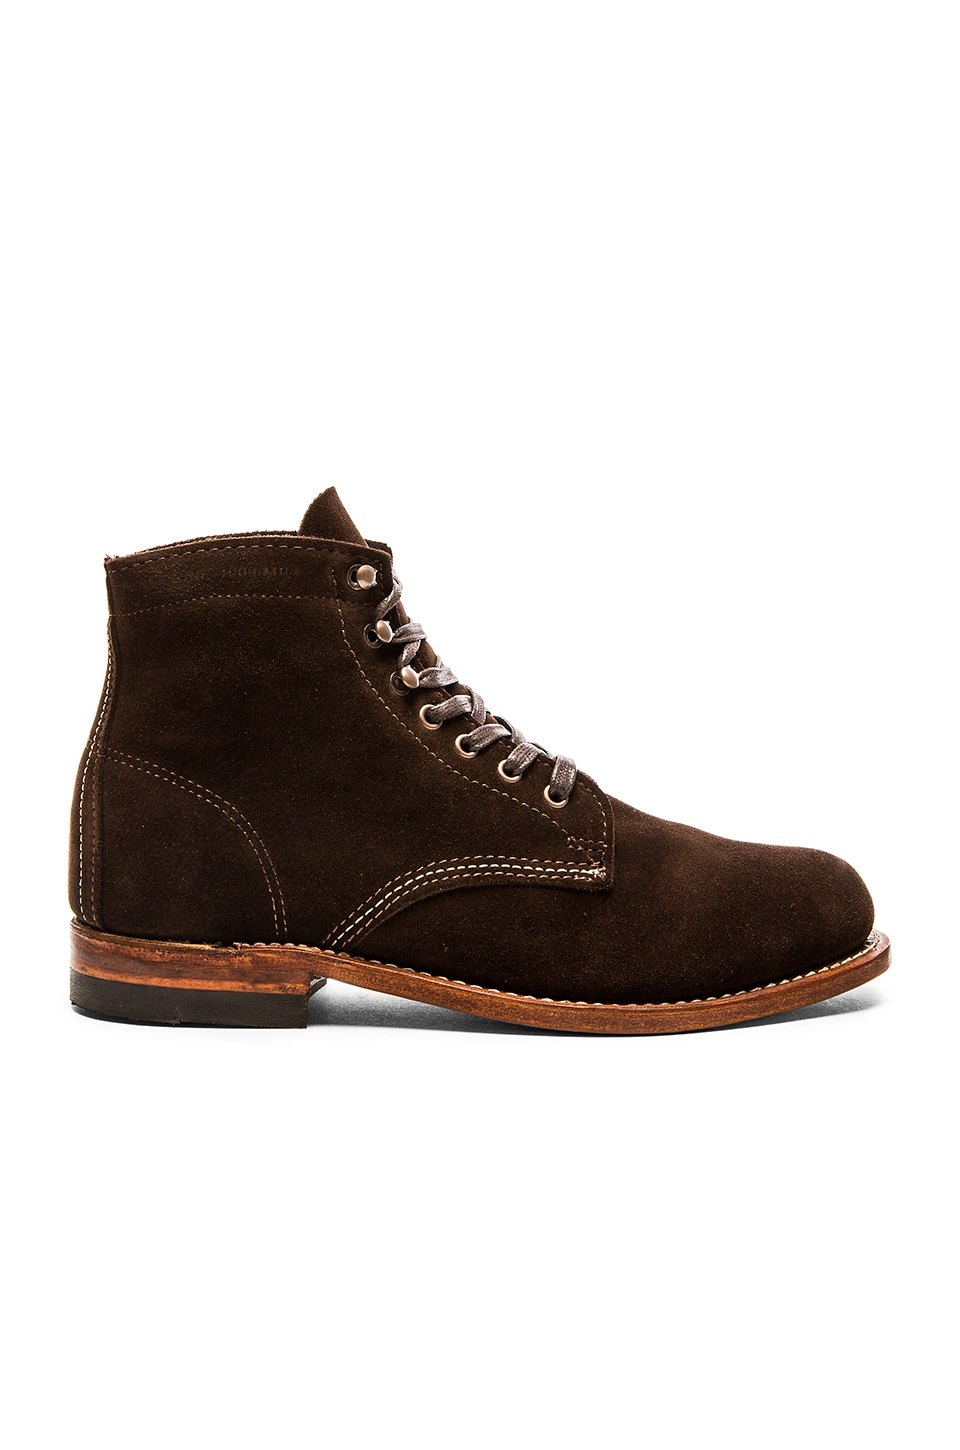 8ac0a929fb6 Wolverine 1000 Mile Original Boot in Brown Suede | REVOLVE